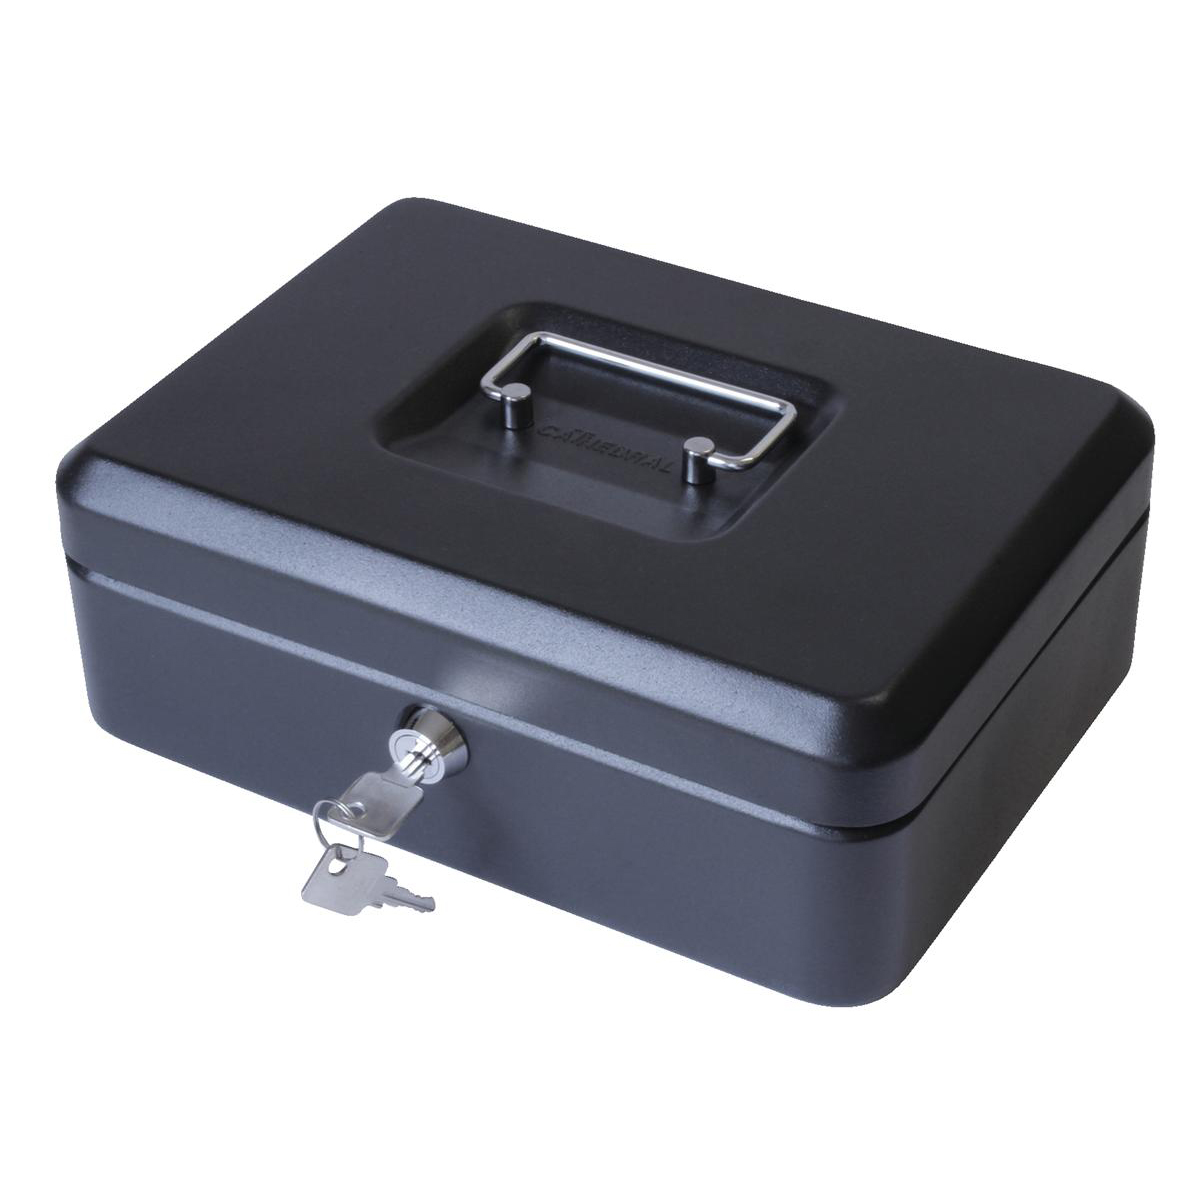 Cash or ticket boxes Cash Box with Lock & 2 Keys Removable Coin Tray 10 Inch W250xD180xH70mm Black